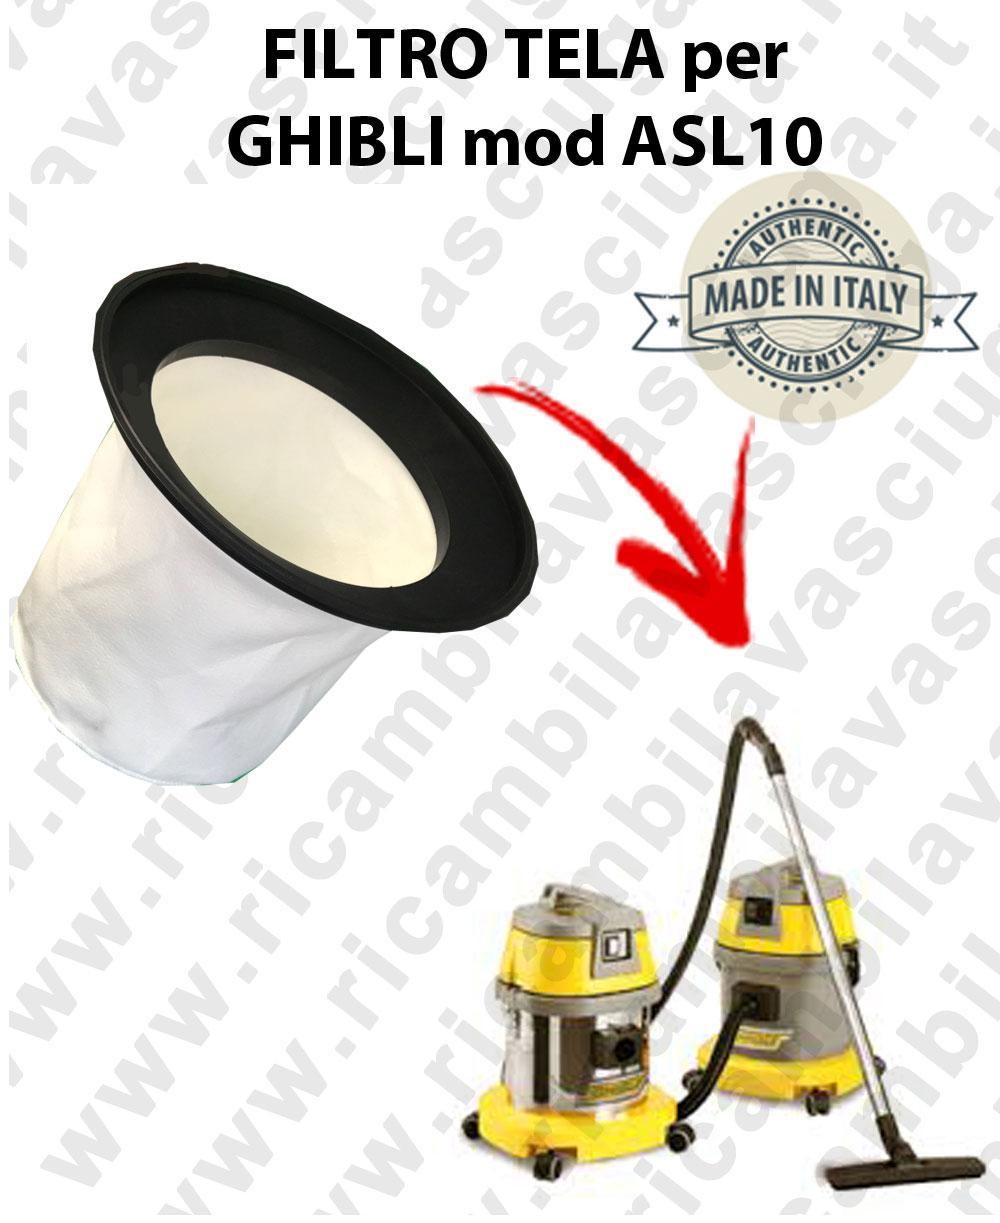 Canvas filter for vacuum cleaner GHIBLI model ASL10